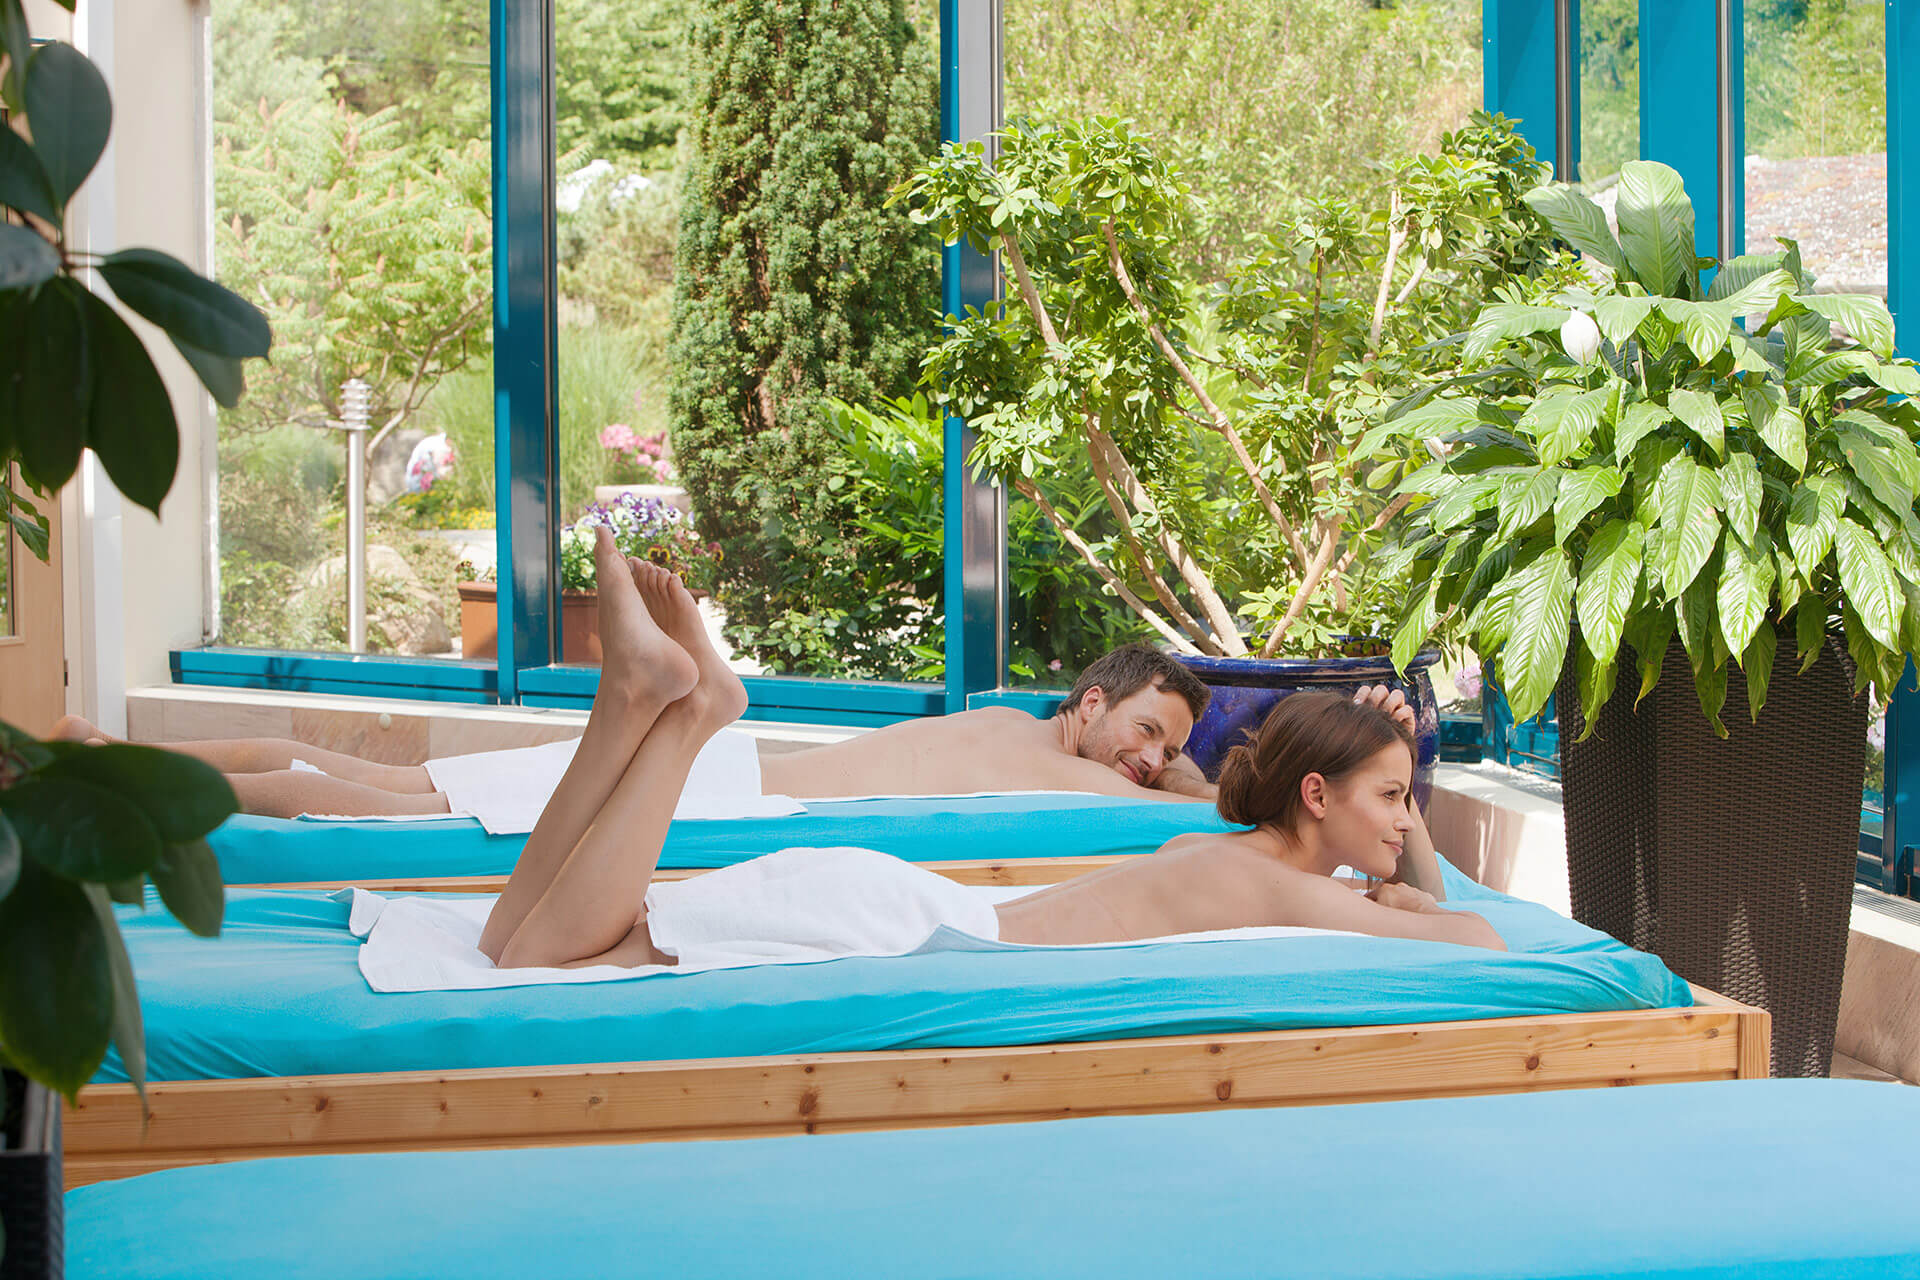 Wellness- & Saunaparadies in der Sachsen-Therme